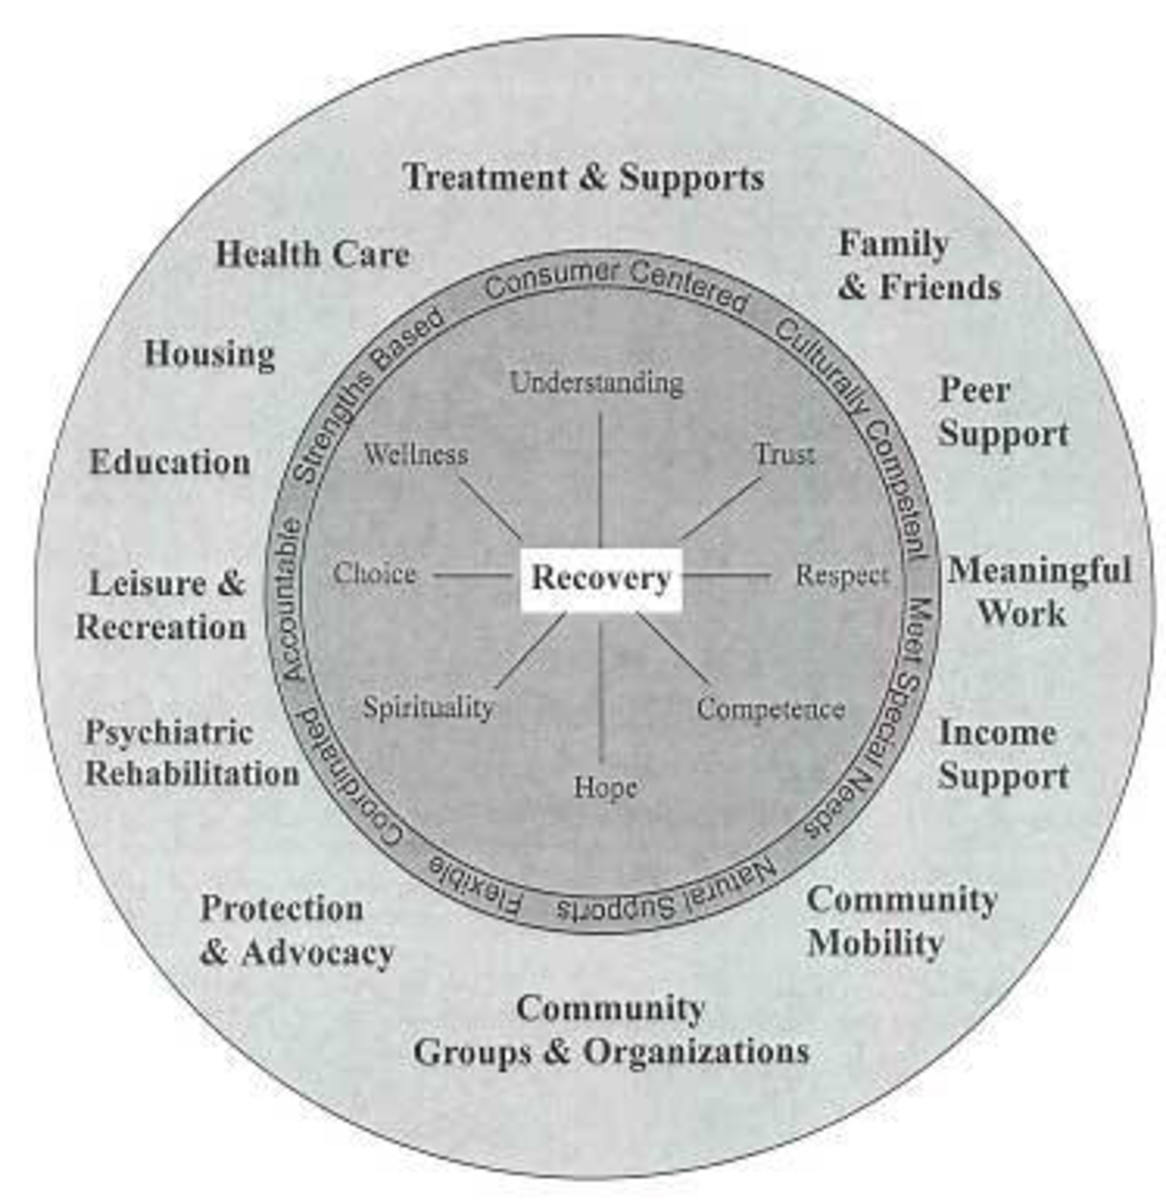 Some Ingredients of the Recovery Model